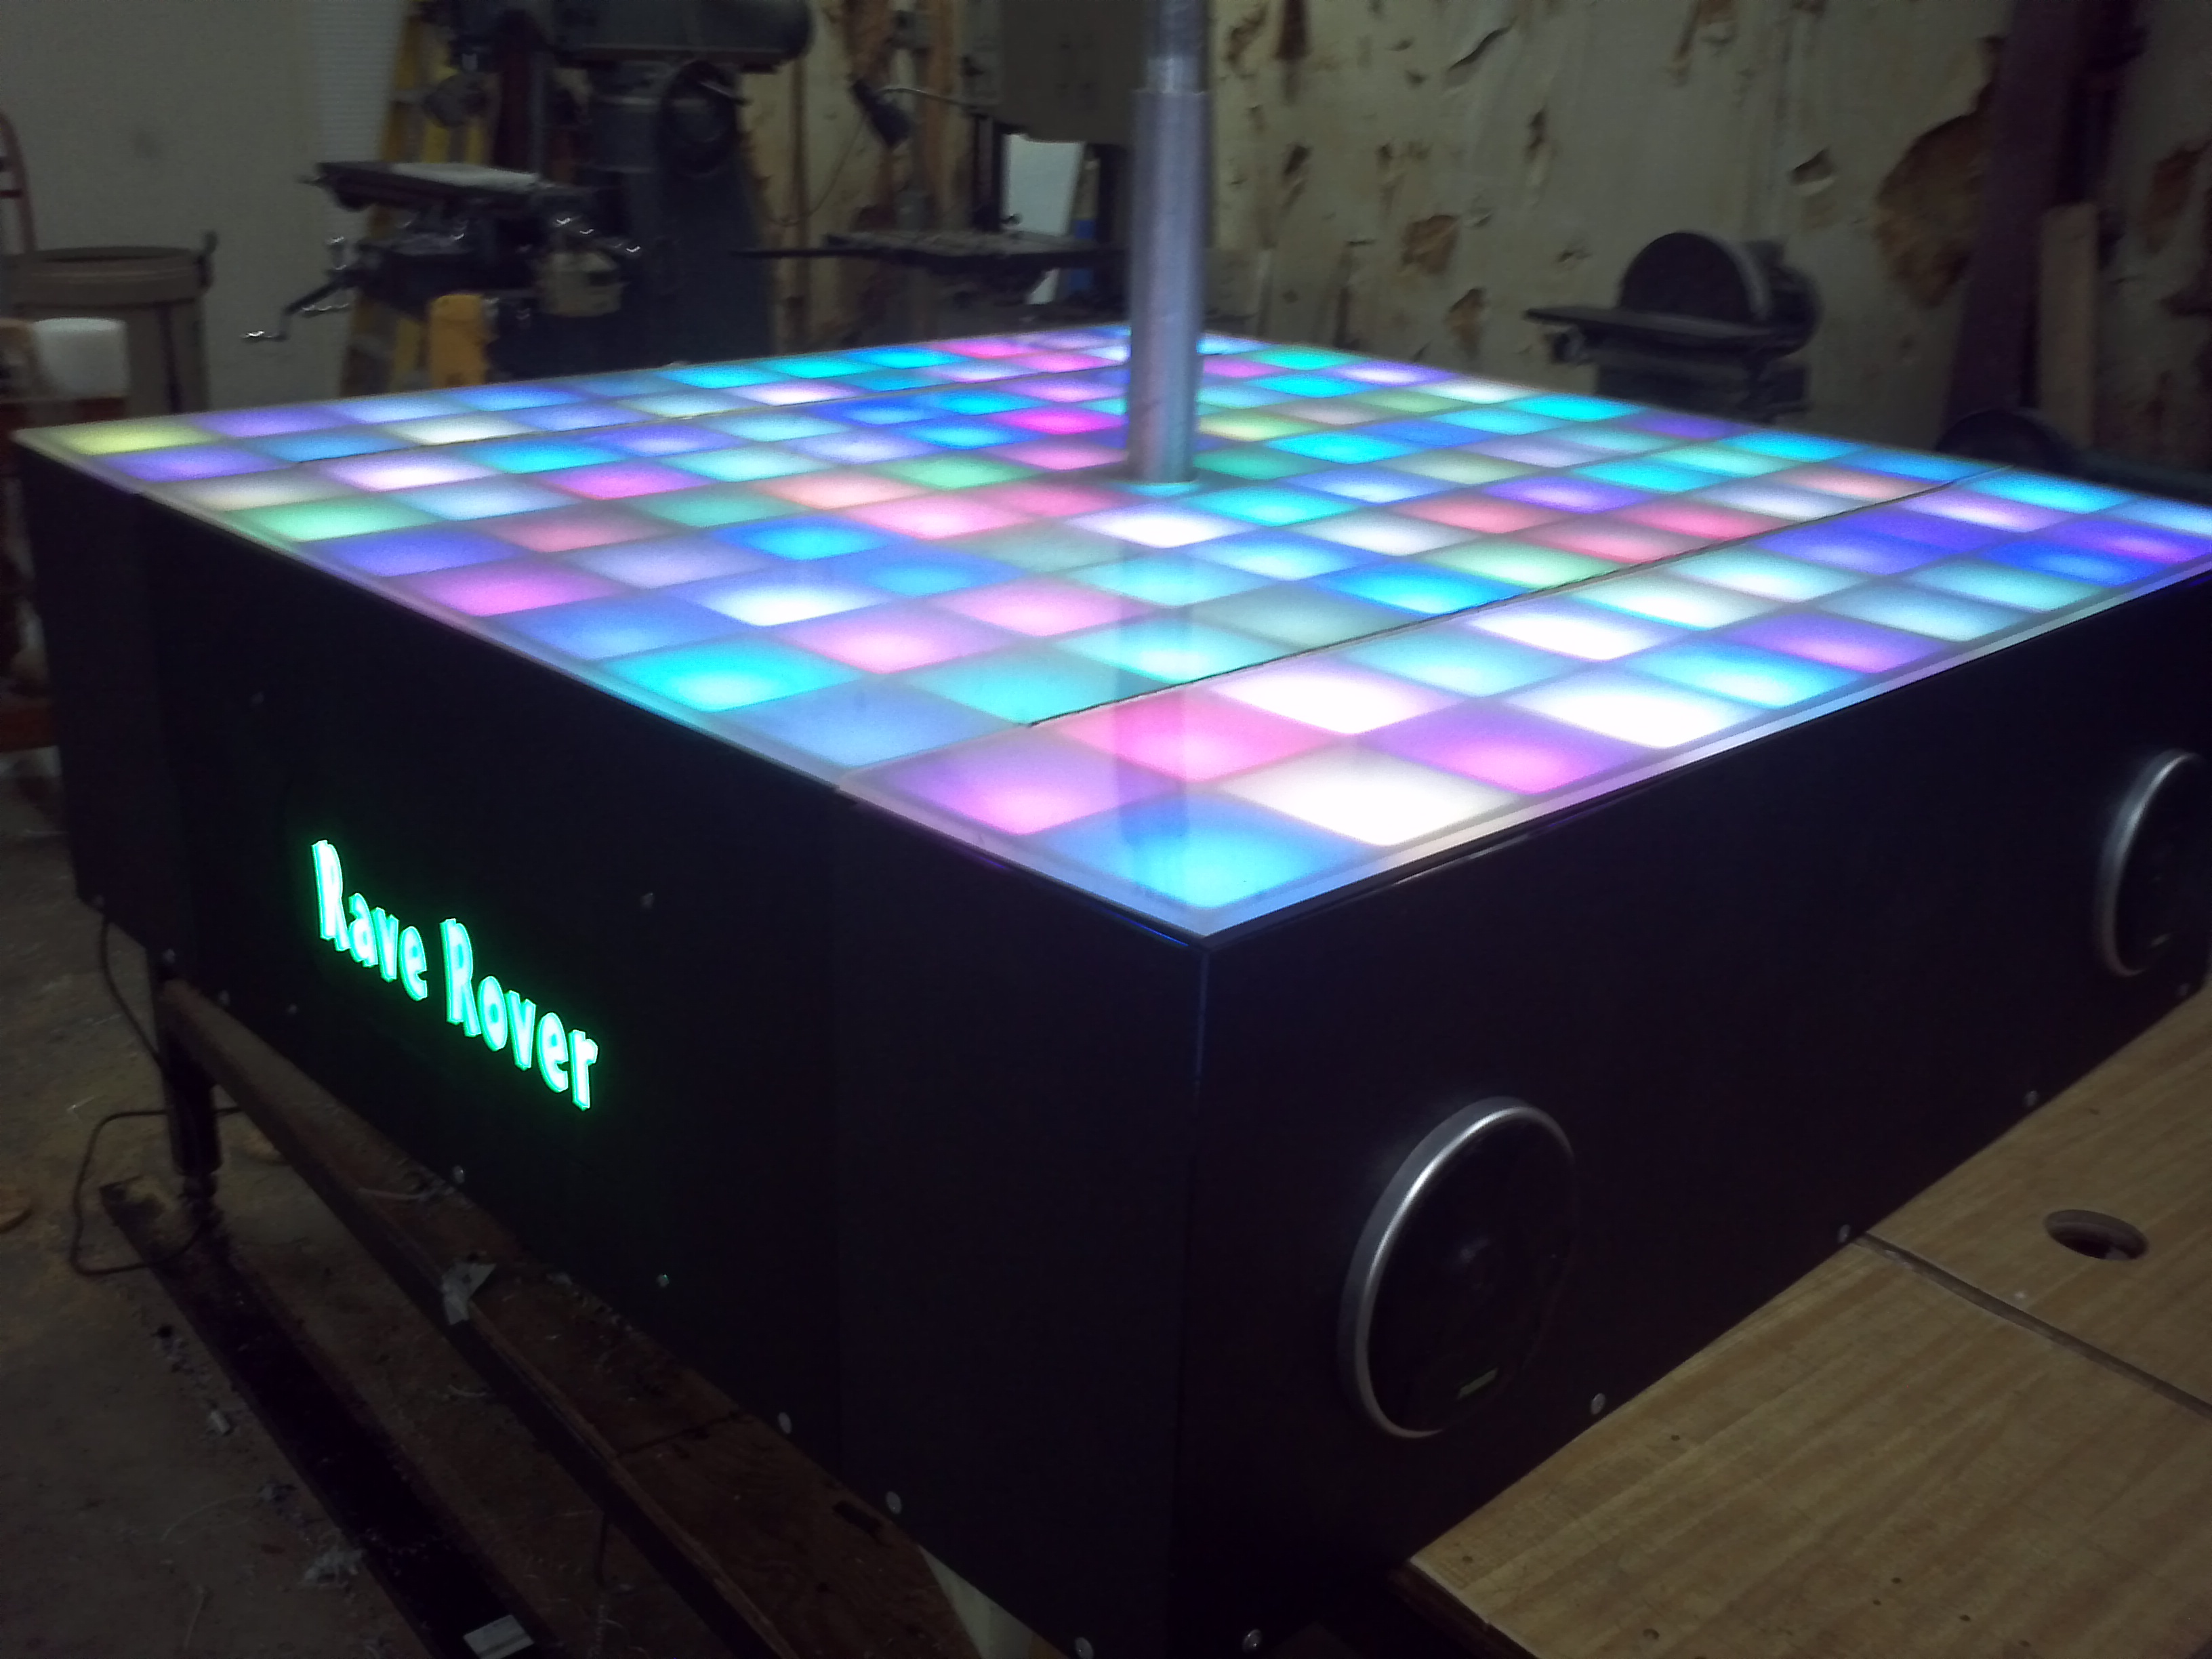 Picture of Rave Rover - Mobile Dance Stage